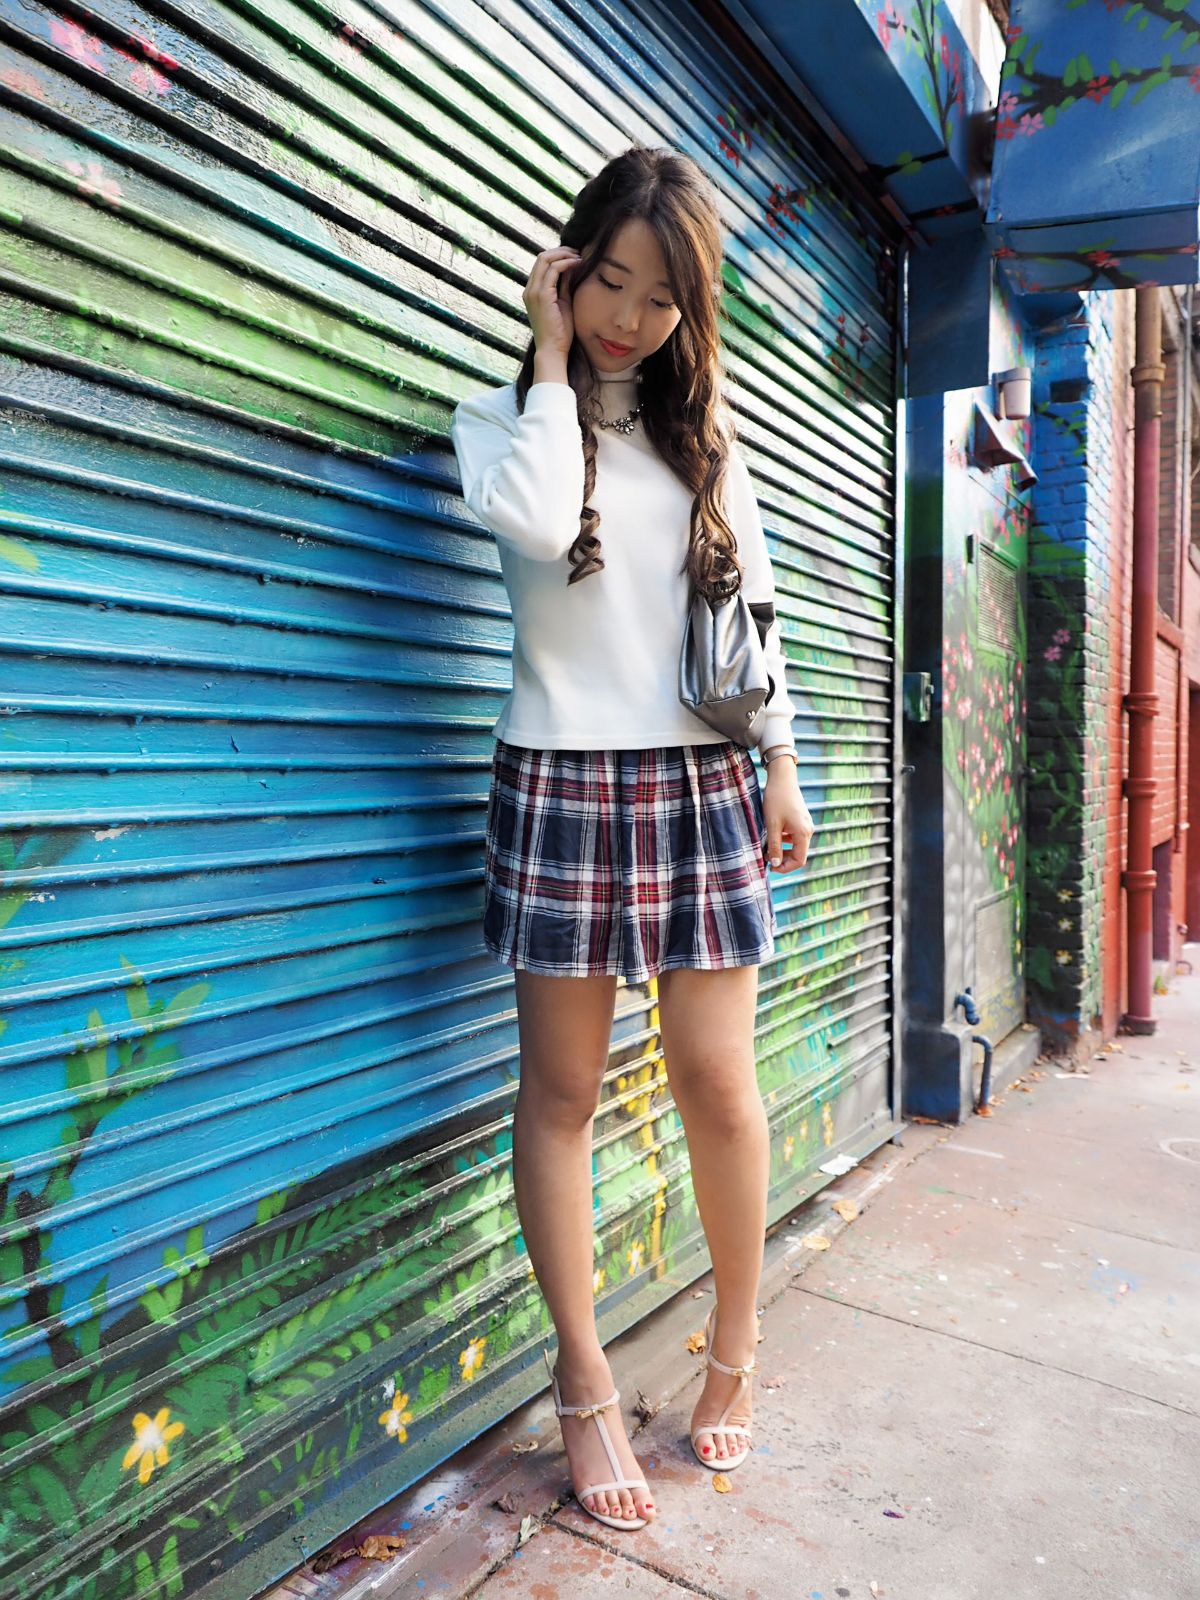 Asian Girls In Skirts